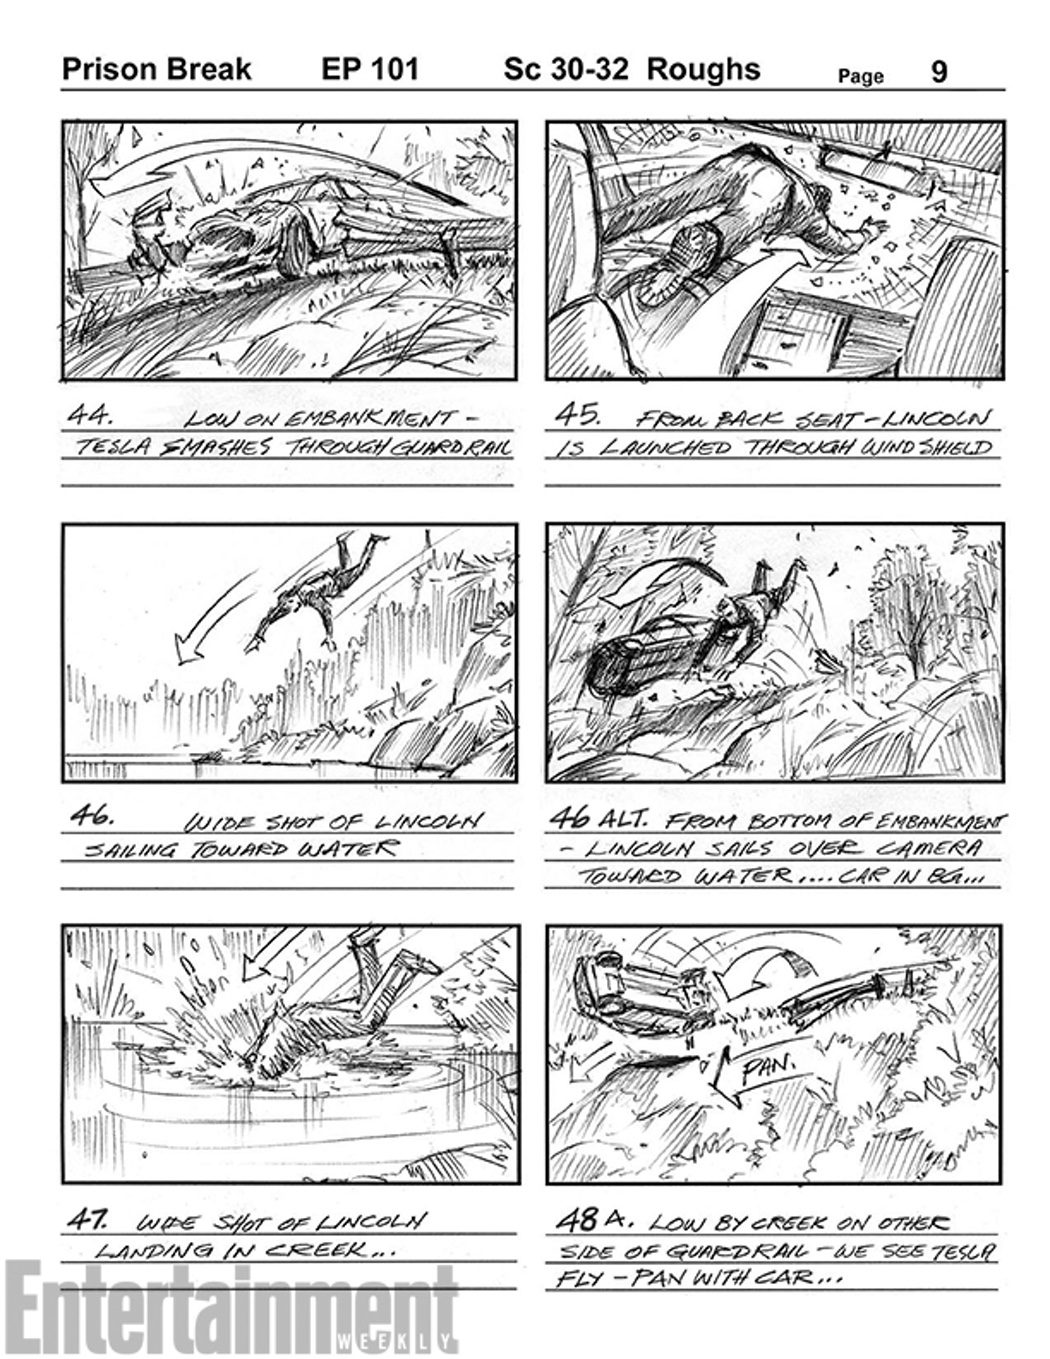 Storyboard de la primera escena del regreso de 'Prison Break'